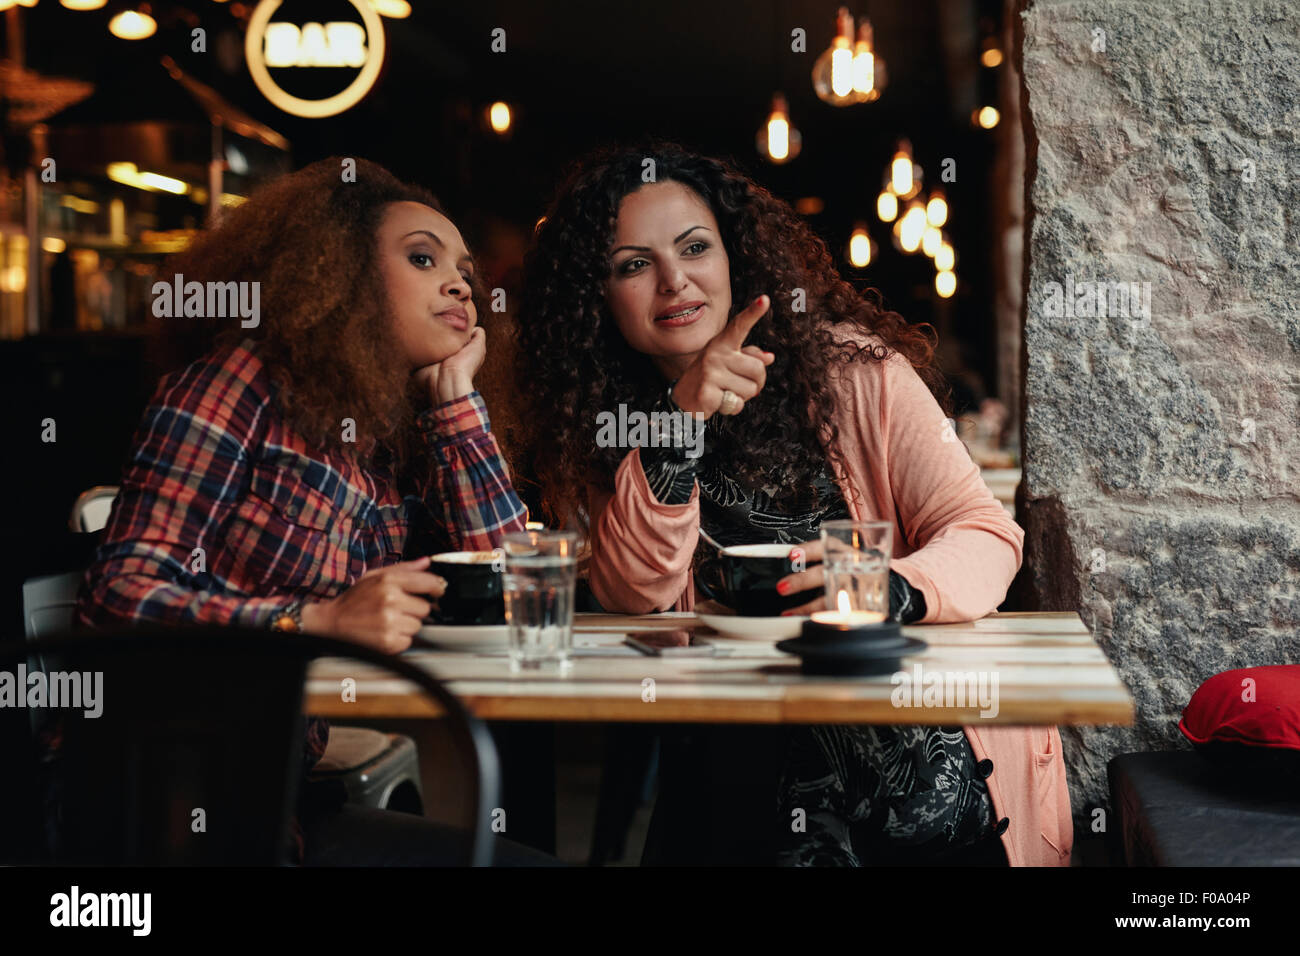 Two young women sitting at a restaurant looking away, with one pointing away showing something to her friend. - Stock Image